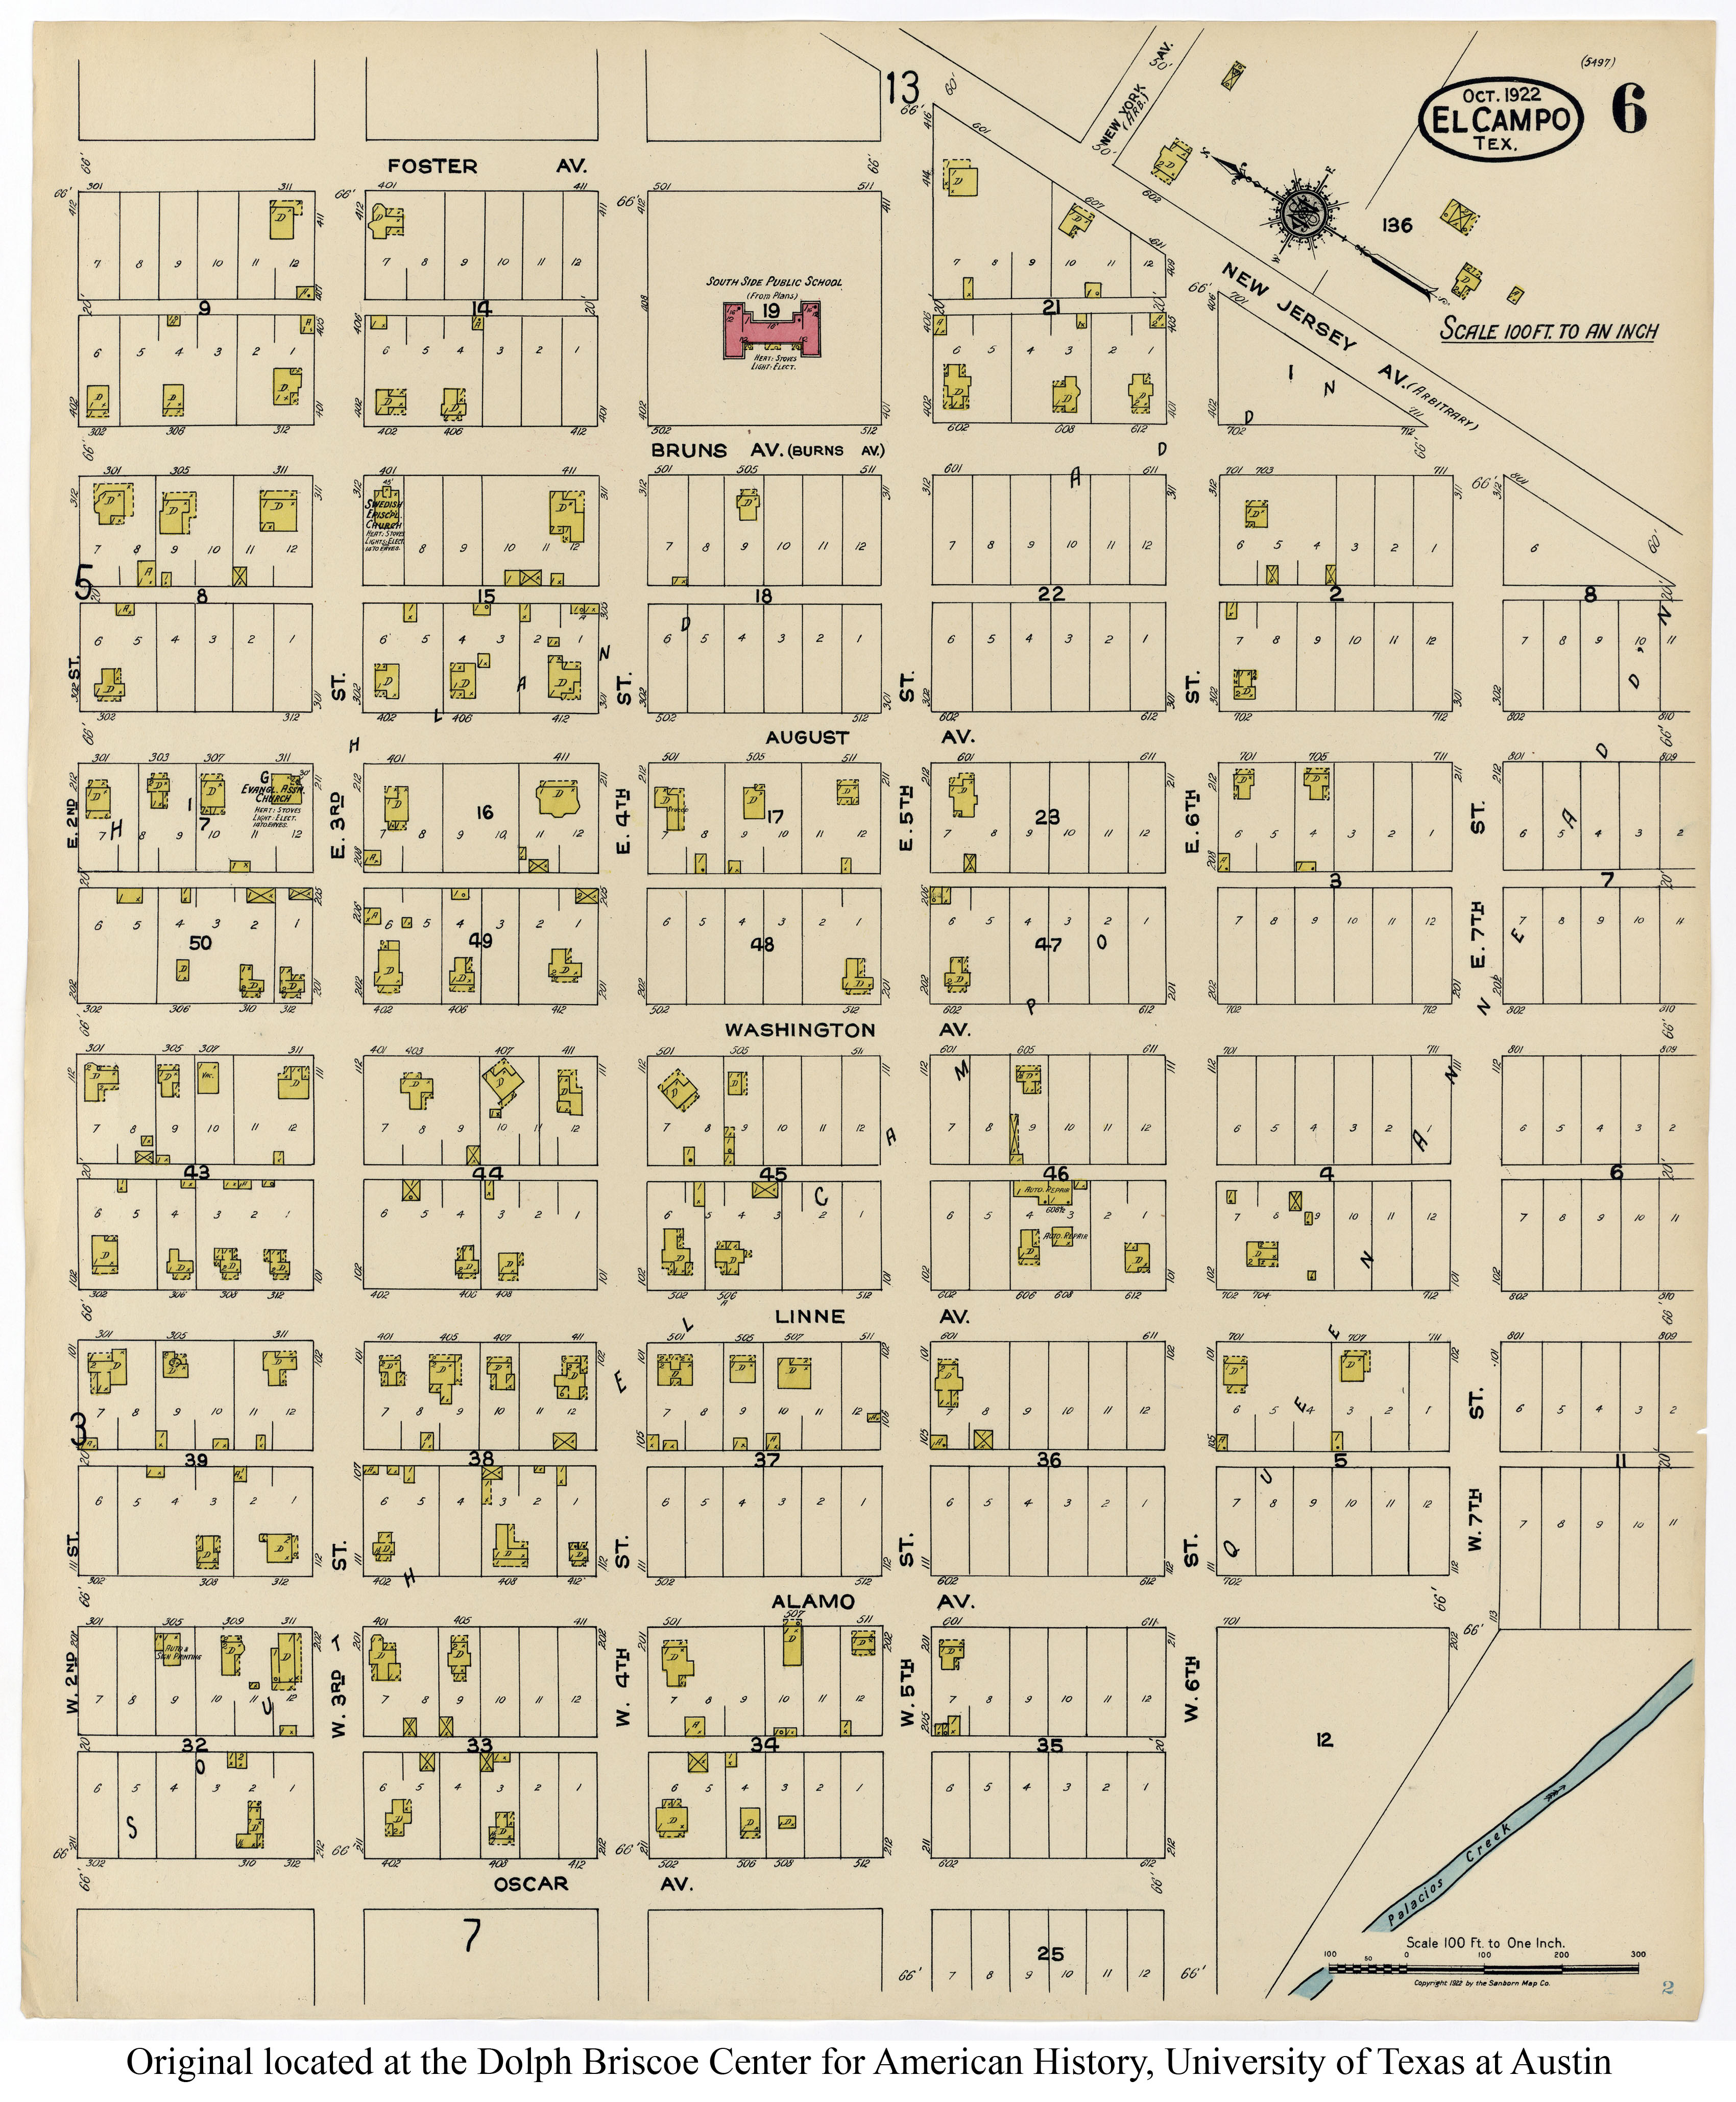 Sanborn Maps of Texas - Perry-Castañeda Map Collection - UT ...